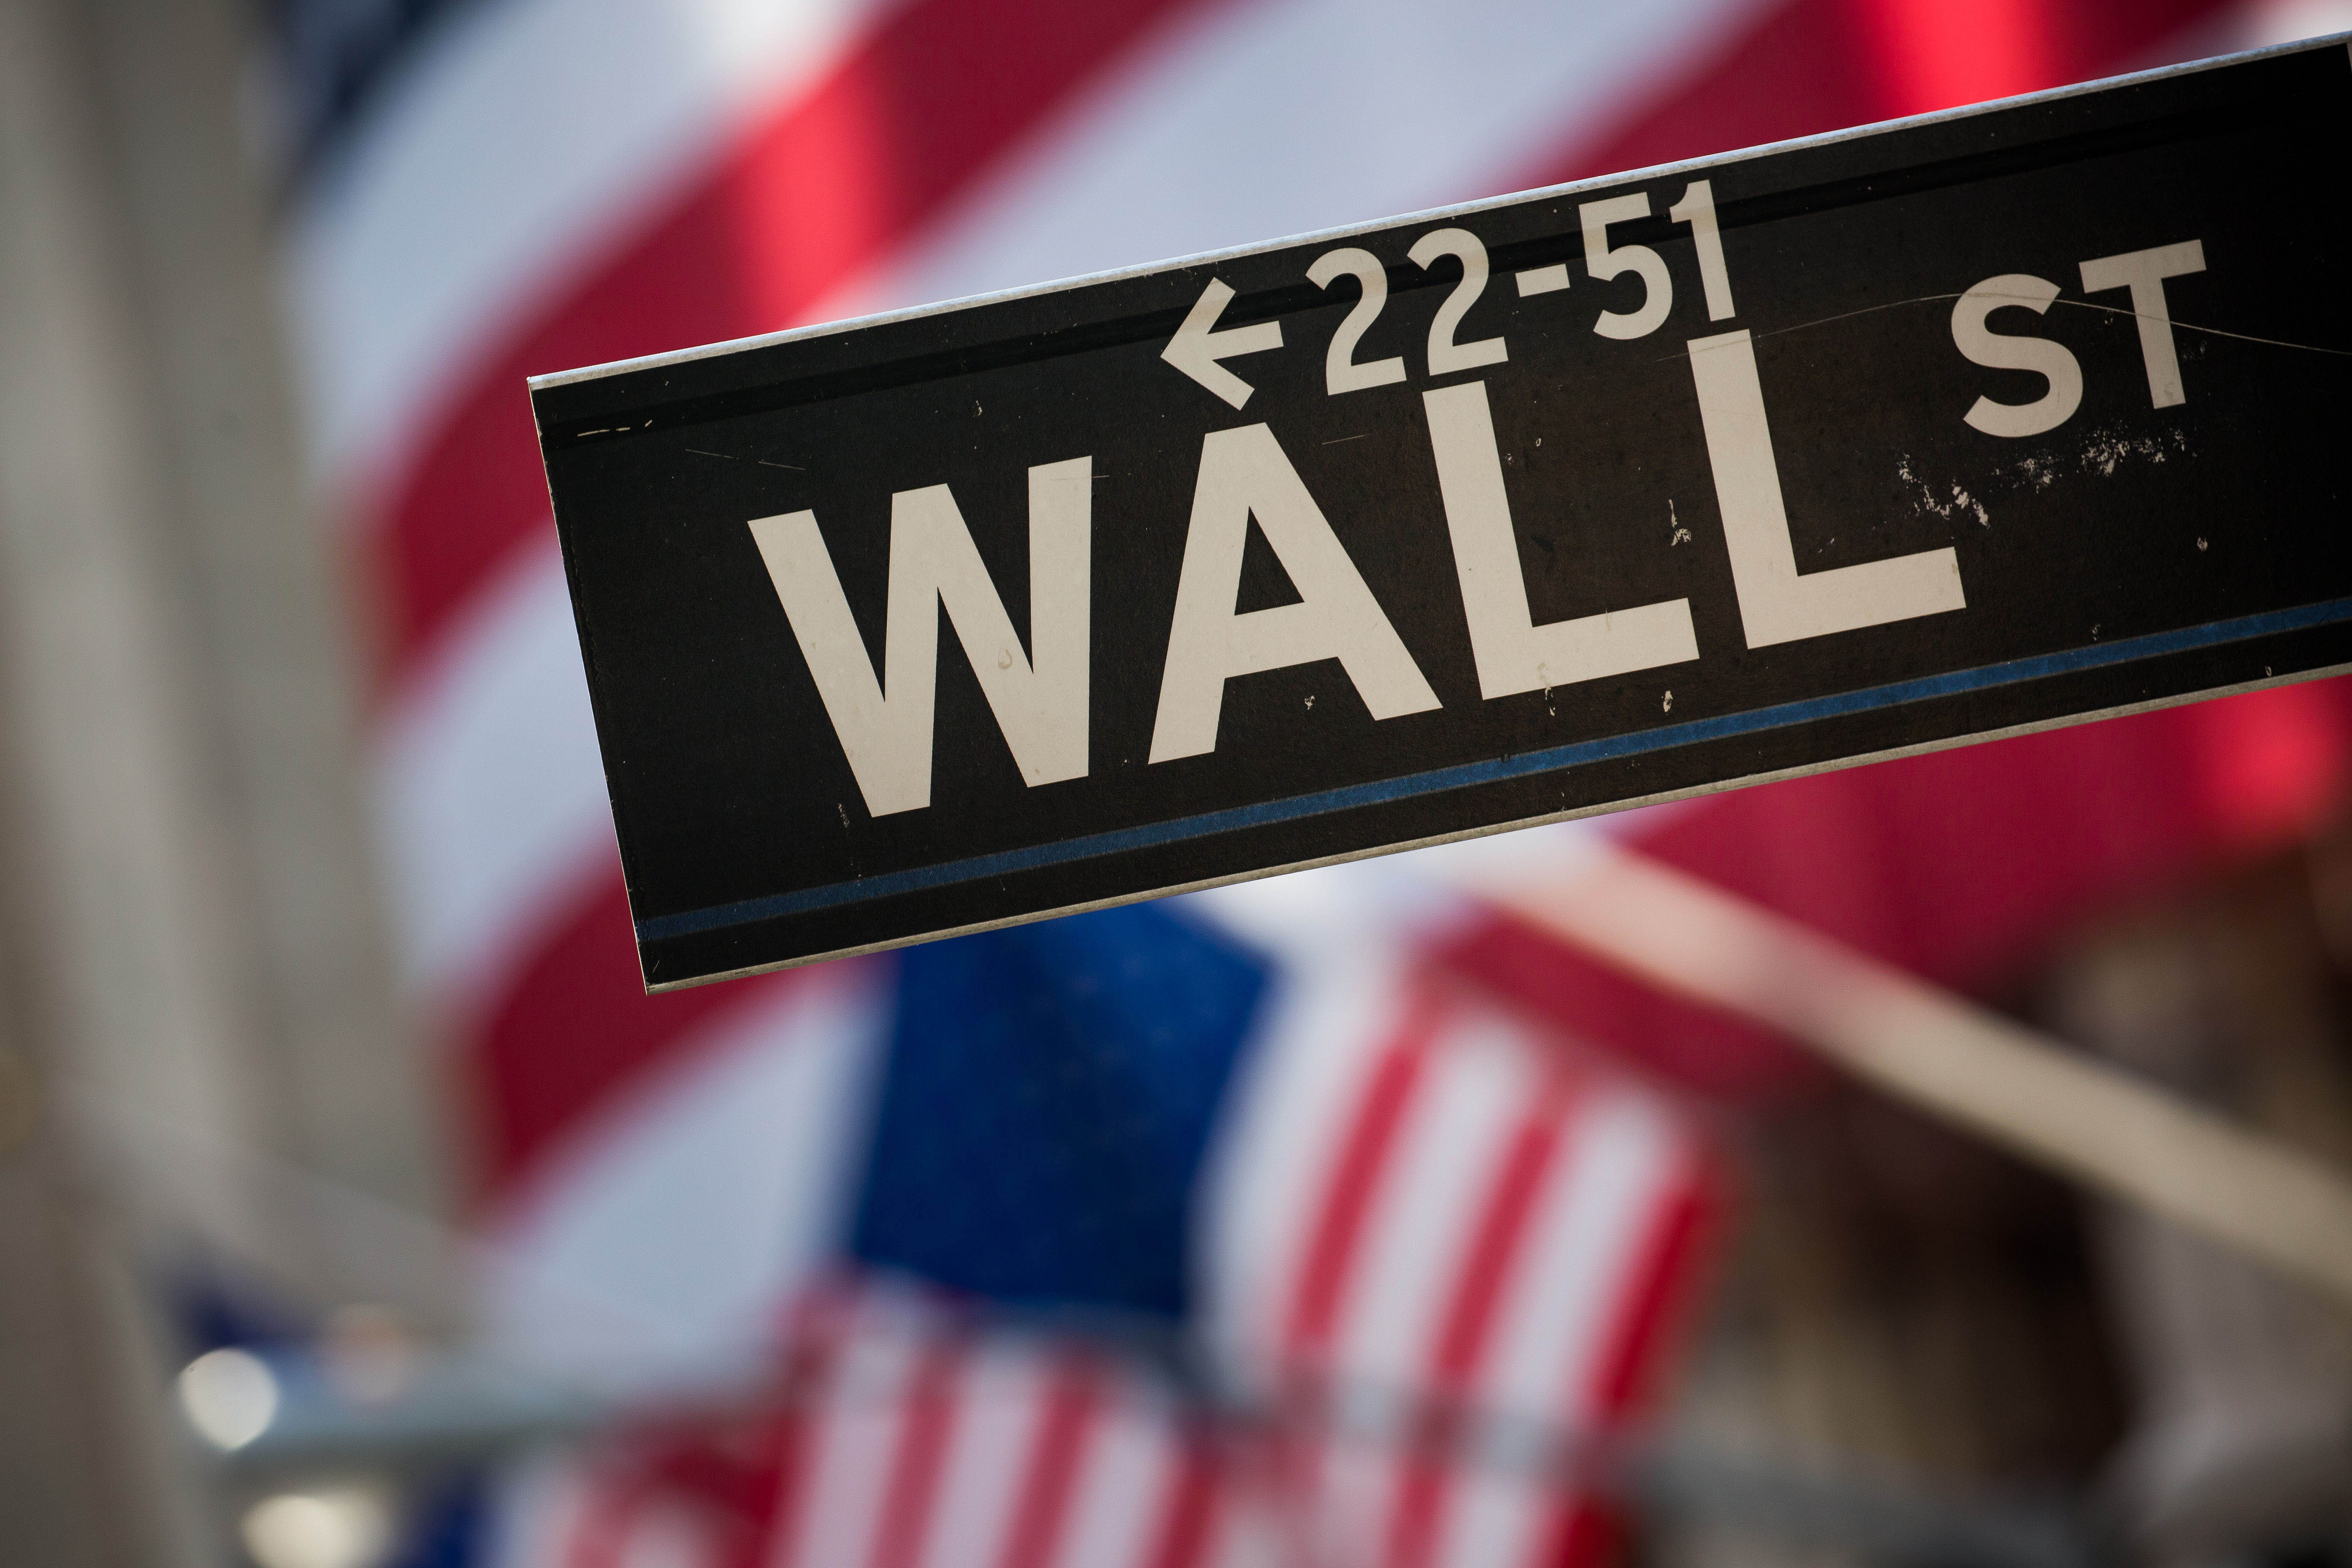 A Wall Street sign is displayed in front of the New York Stock Exchange in New York. (Bloomberg News)